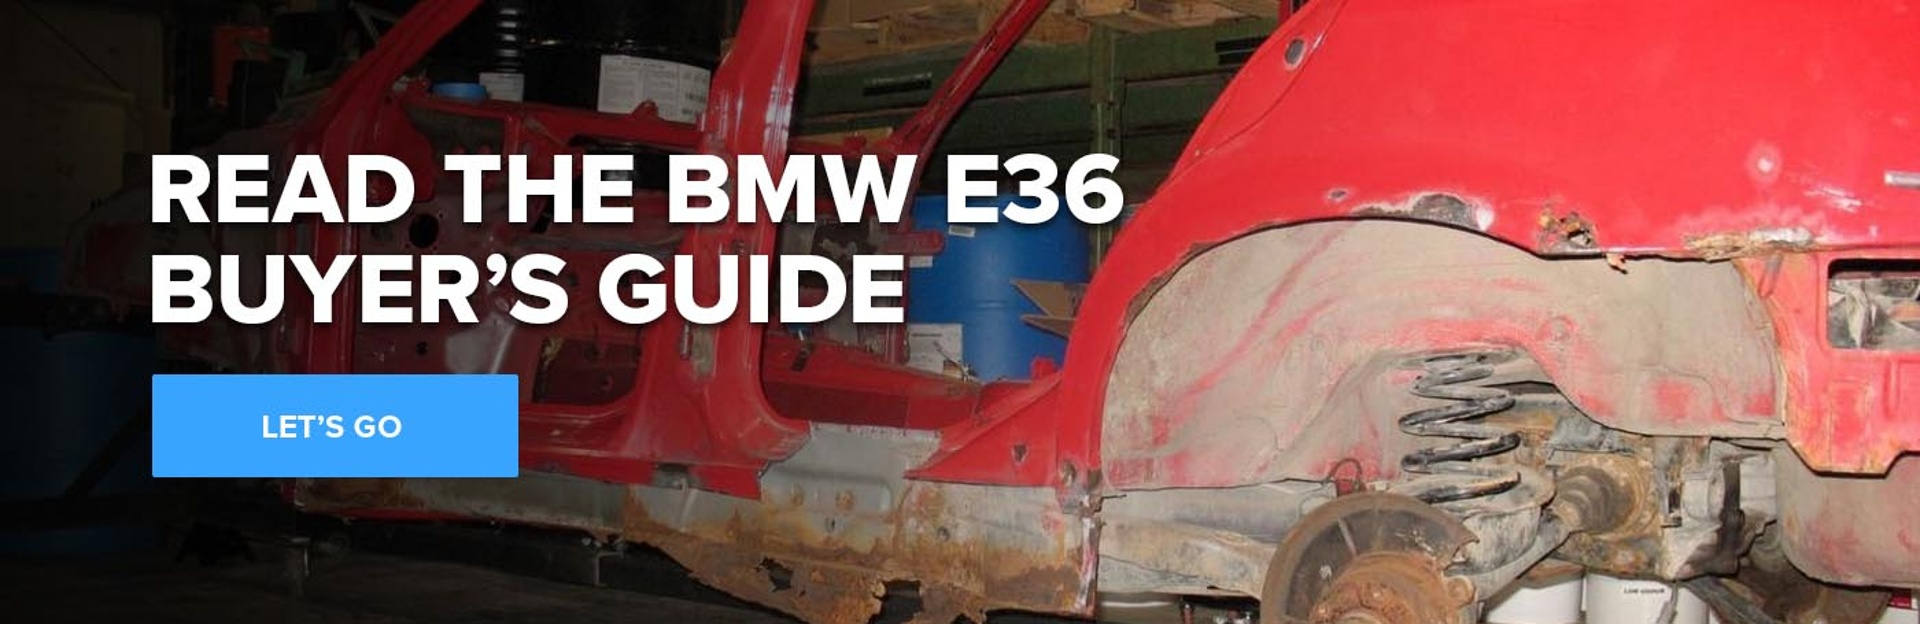 Read the BMW E36 Buyer's Guide